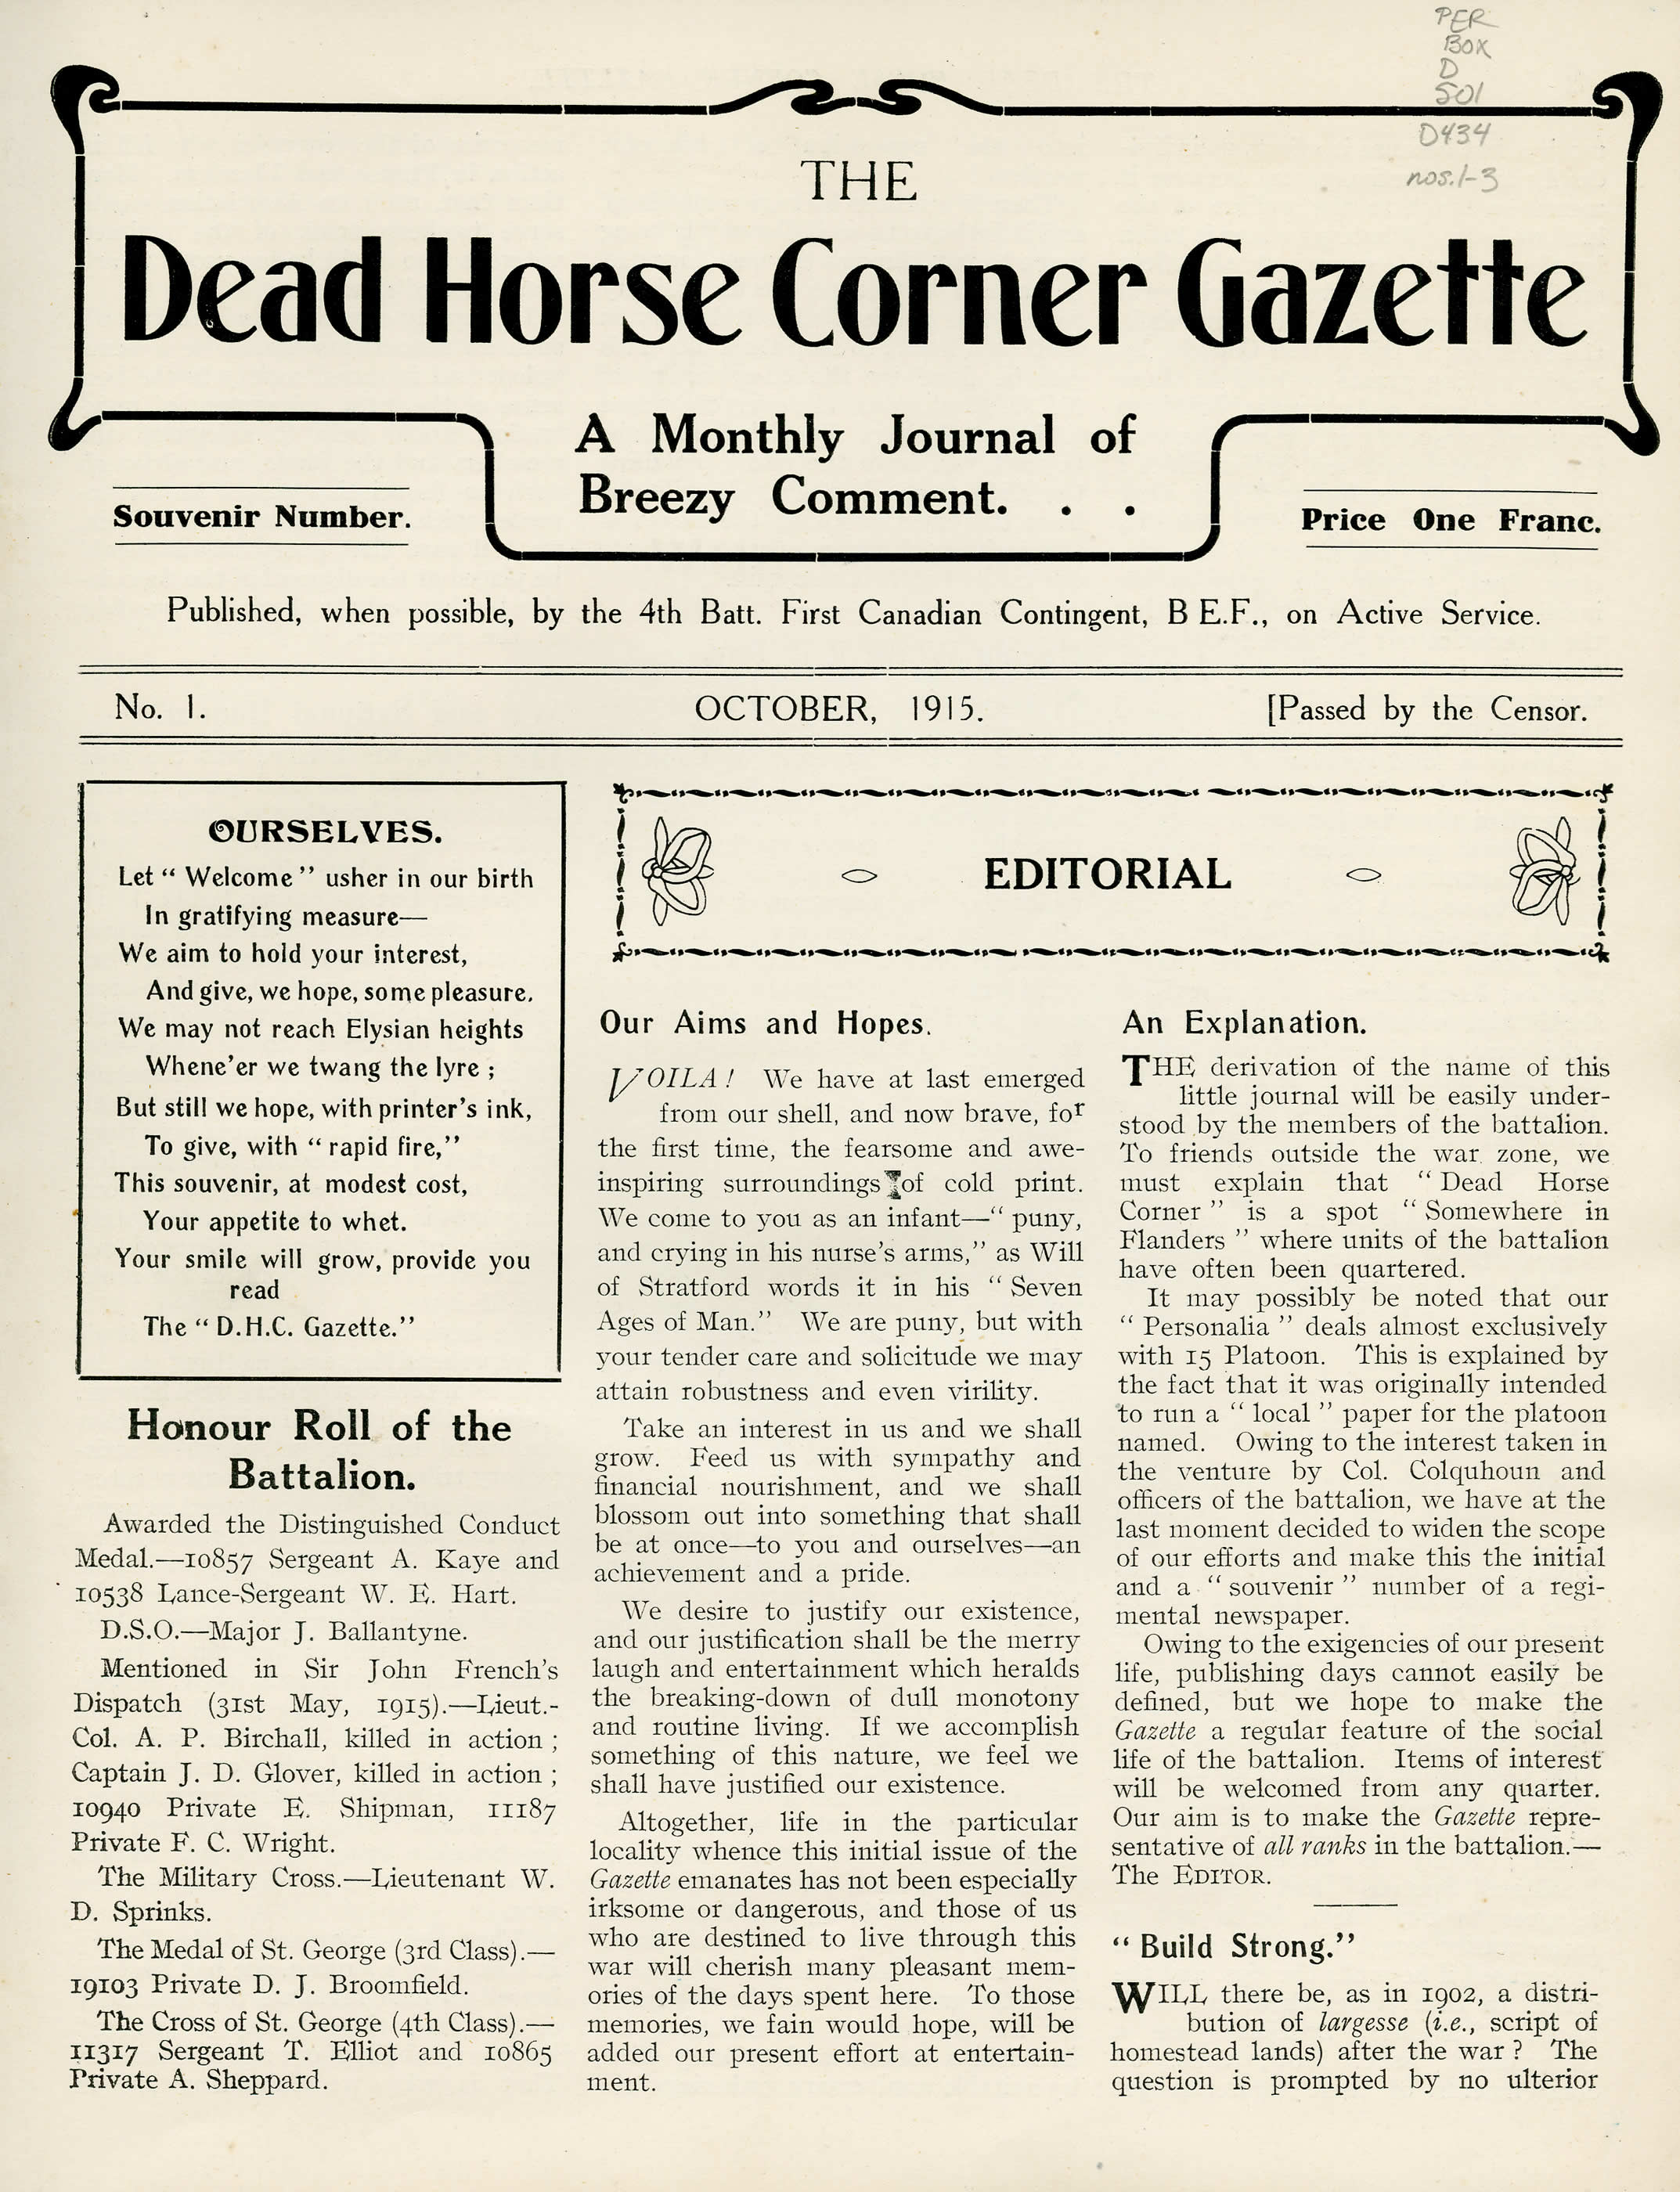 The Dead Horse Corner Gazette